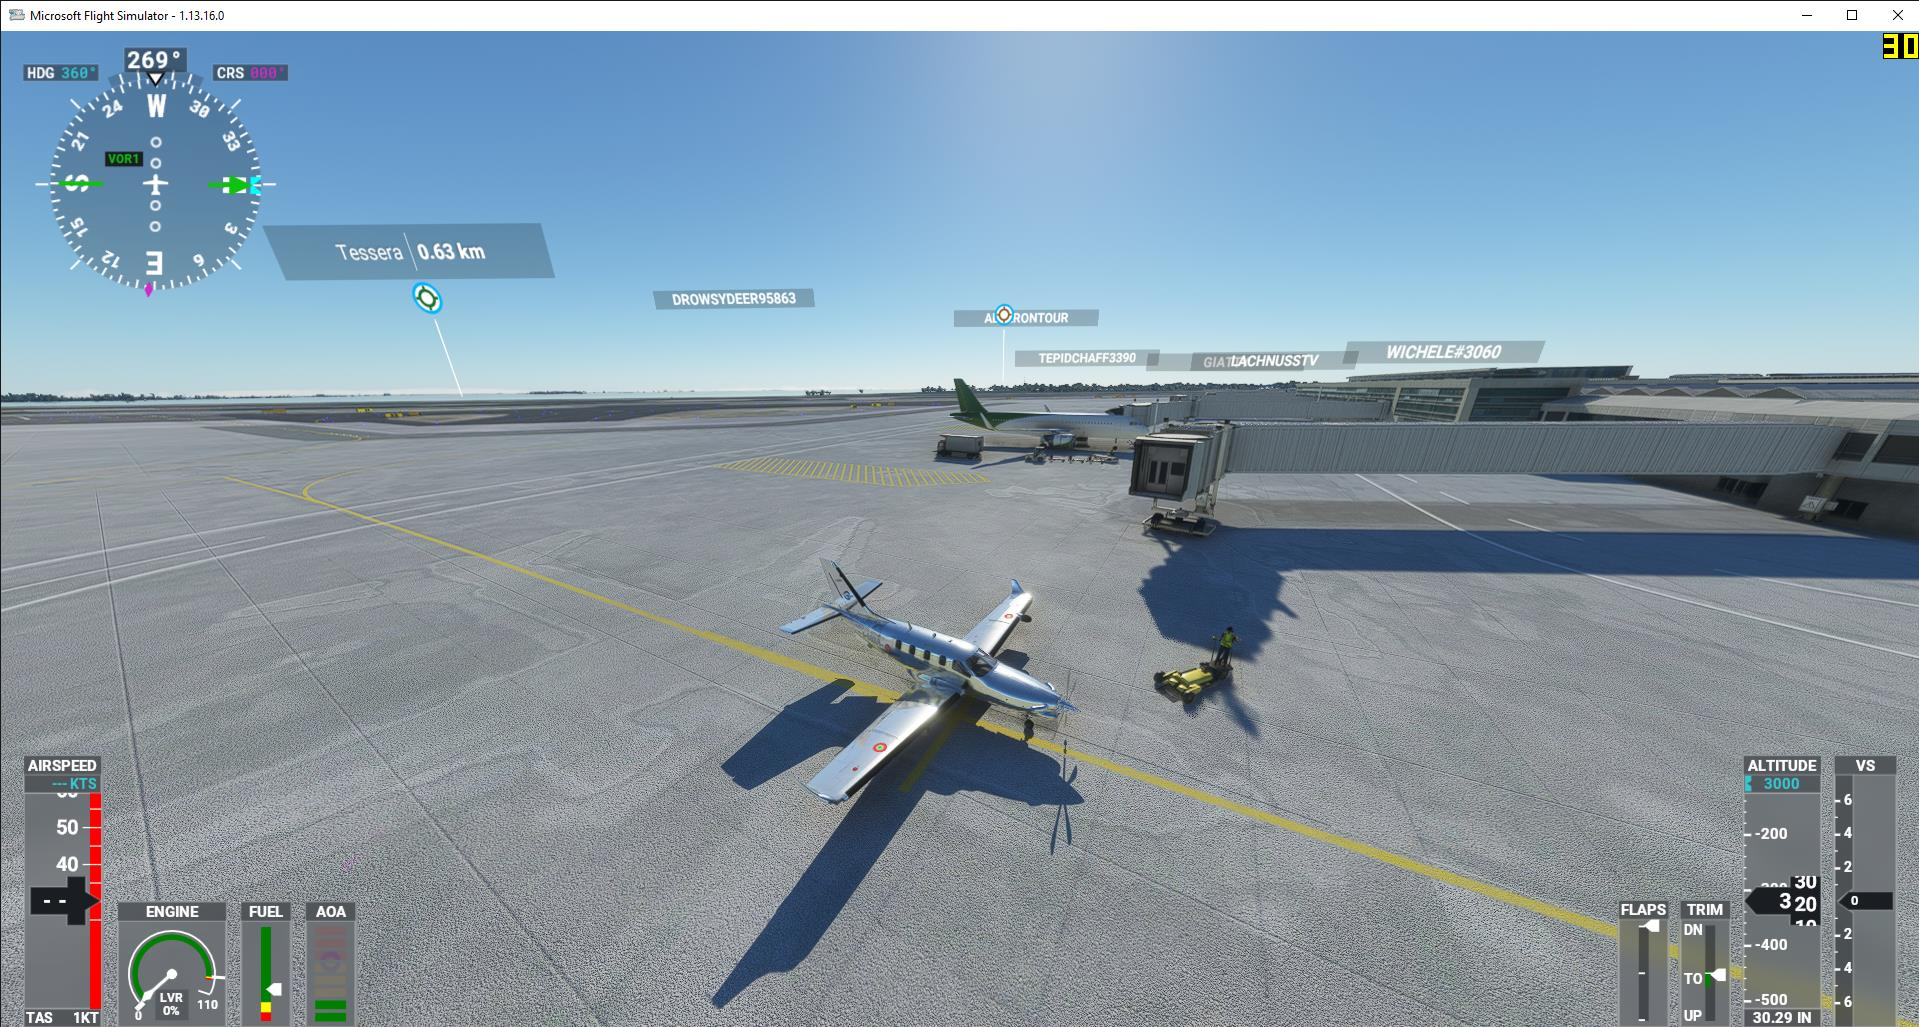 https://vivendobyte.blob.core.windows.net/58401/Microsoft Flight Simulator 23_02_2021 13_41_18.jpg